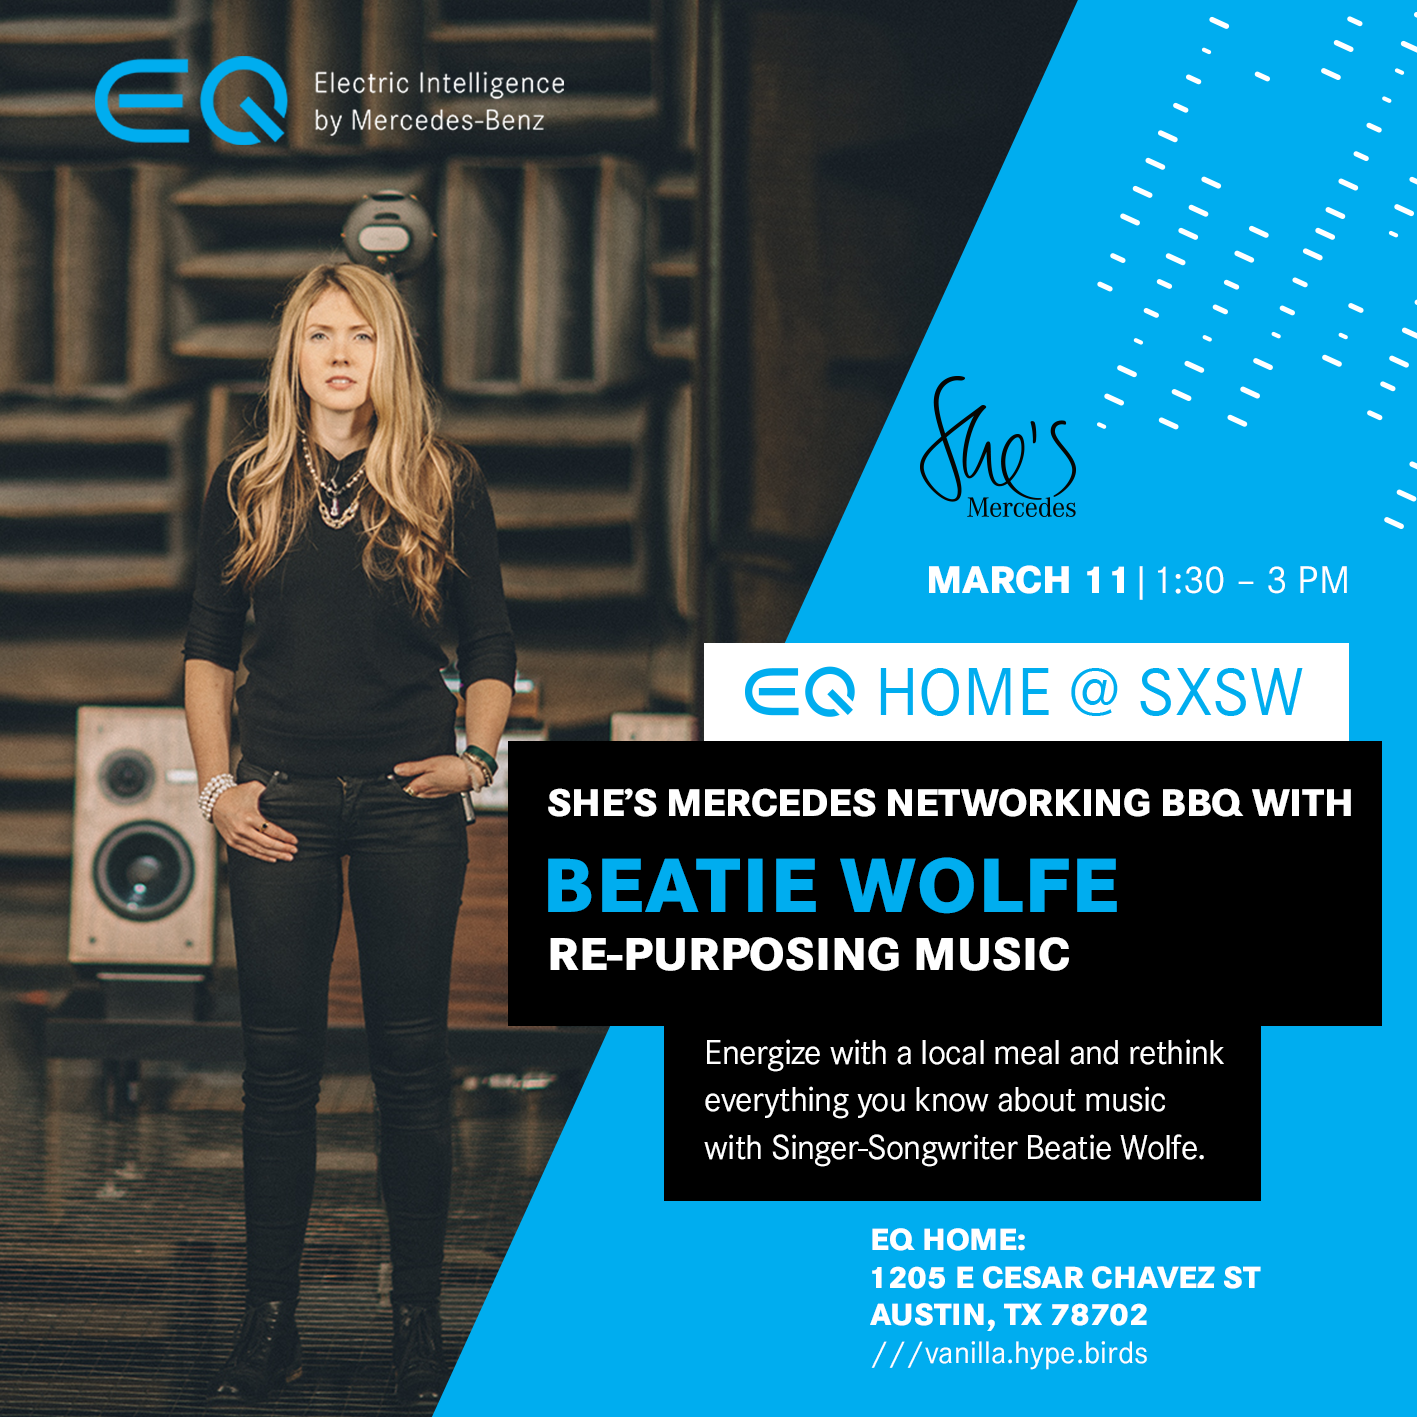 She's Mercedes Networking BBQ_Beatie Wolfe